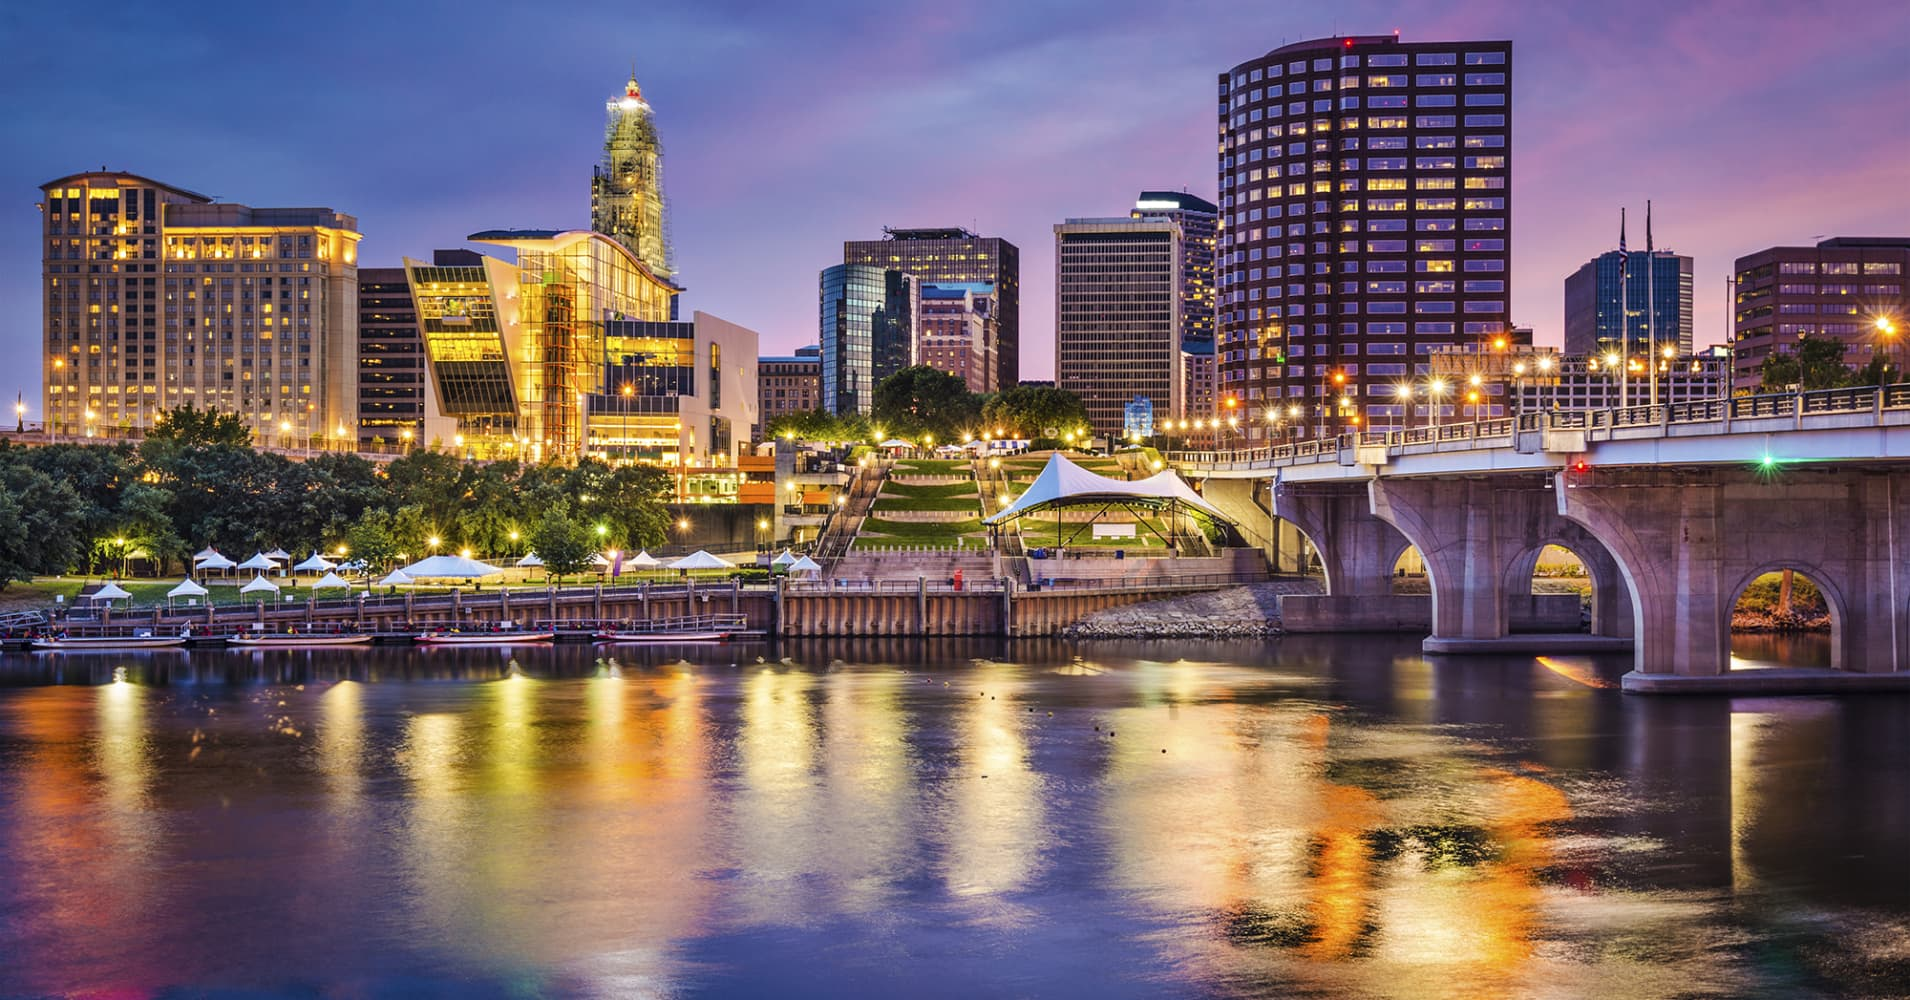 Hartford, Connecticut, is teetering on the brink of bankruptcy, with a projected $2.7 billion deficit for the new fiscal year, beginning July 1.